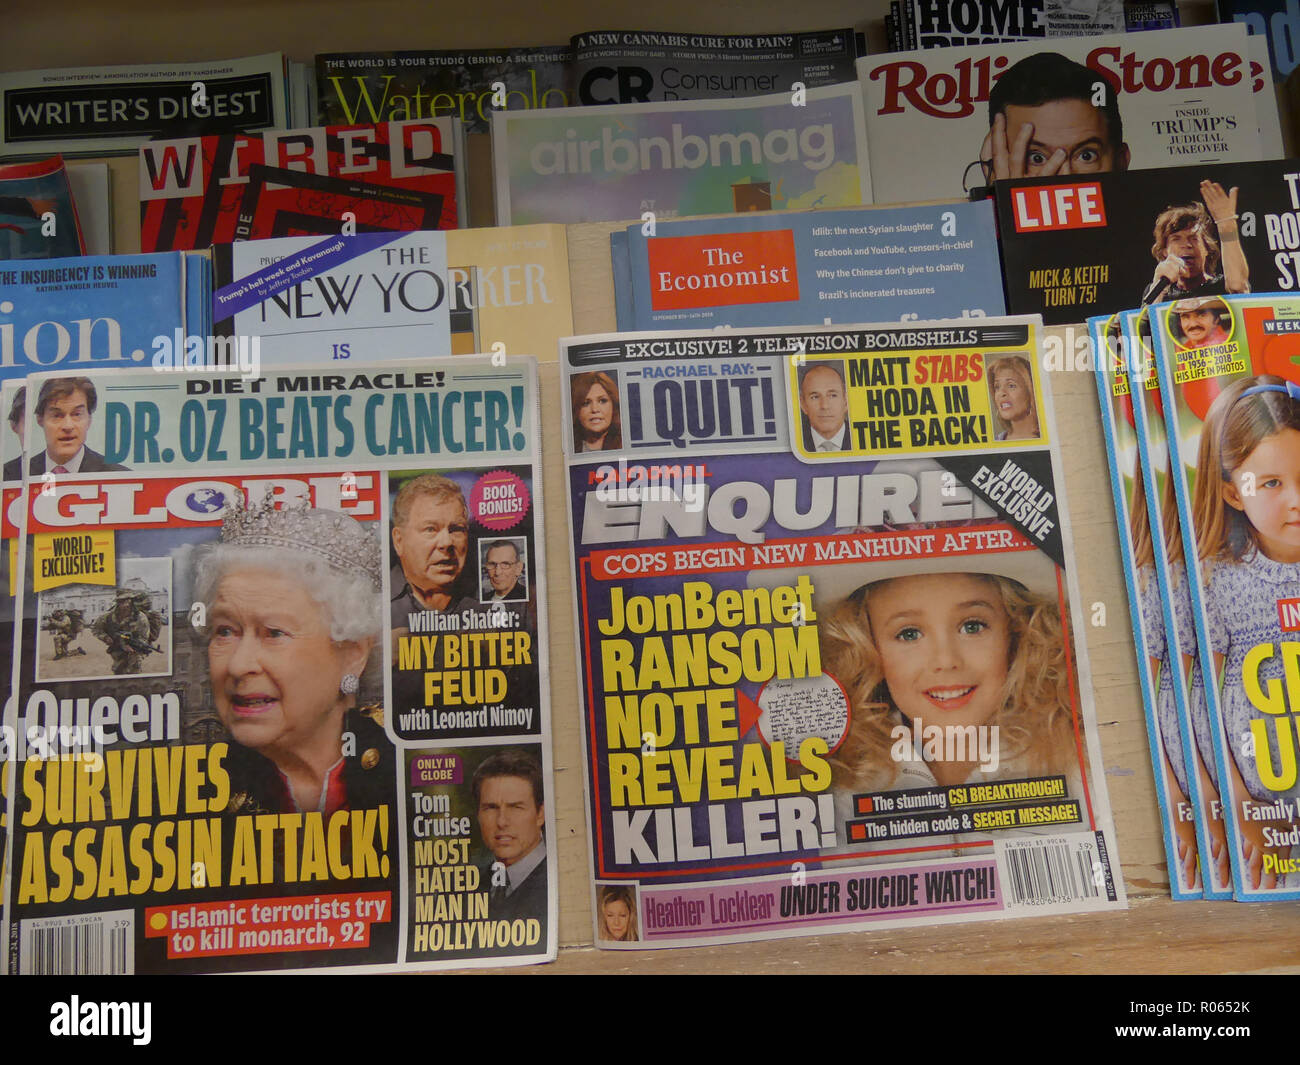 AMERICAN MAGAZINES on sale in Washington in September 2018. Photo: Tony Gale - Stock Image